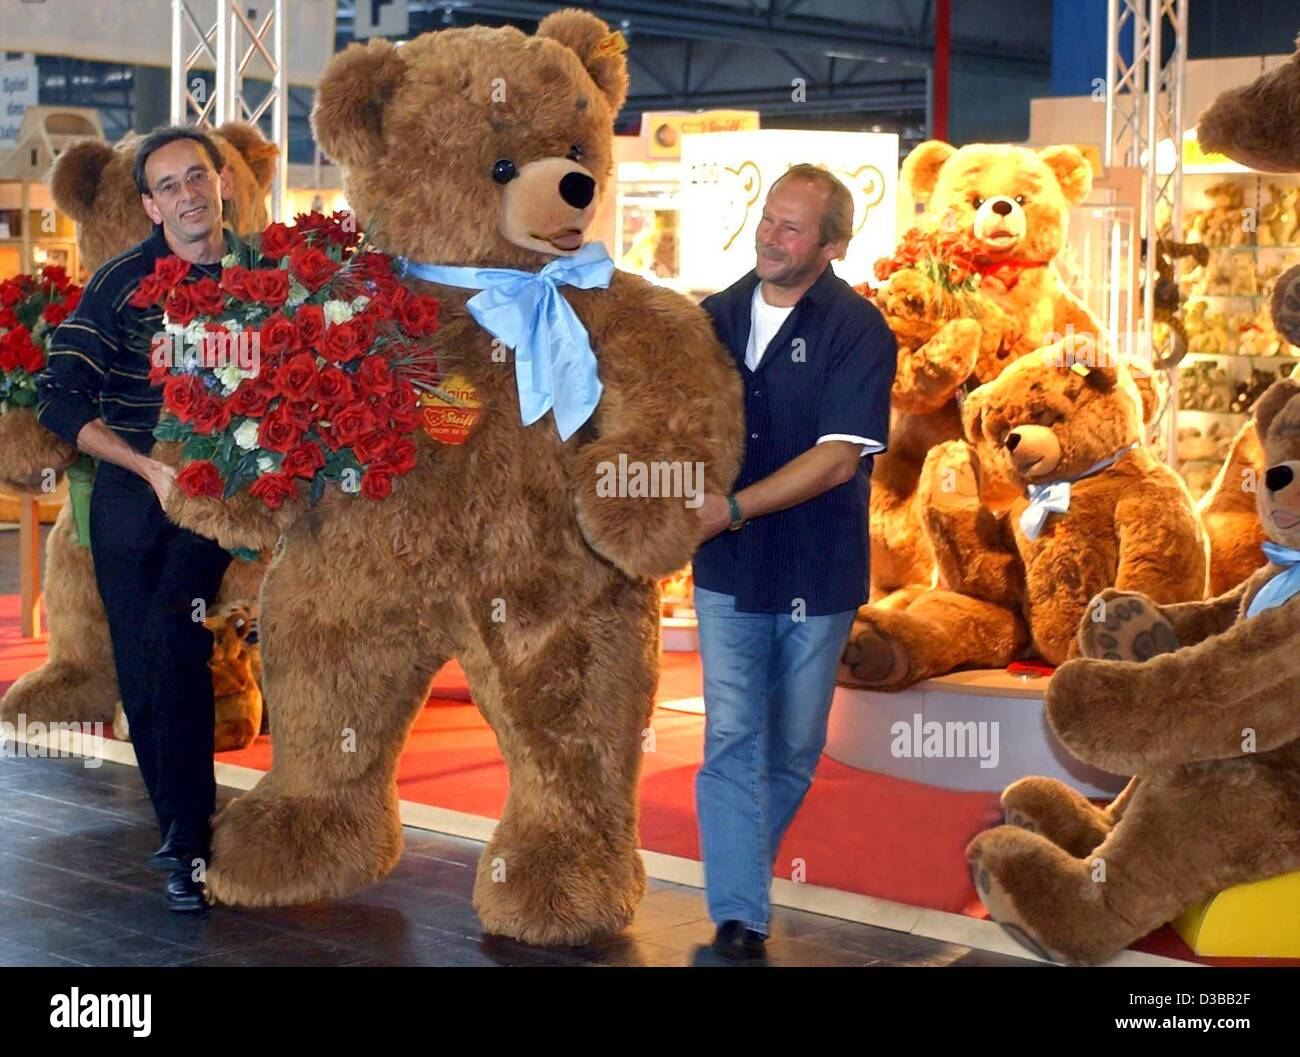 (dpa) - Two men arrange a two-meter large teddy bear of the brand 'Steiff' at a toy trade fair in Leipzig, - Stock Image